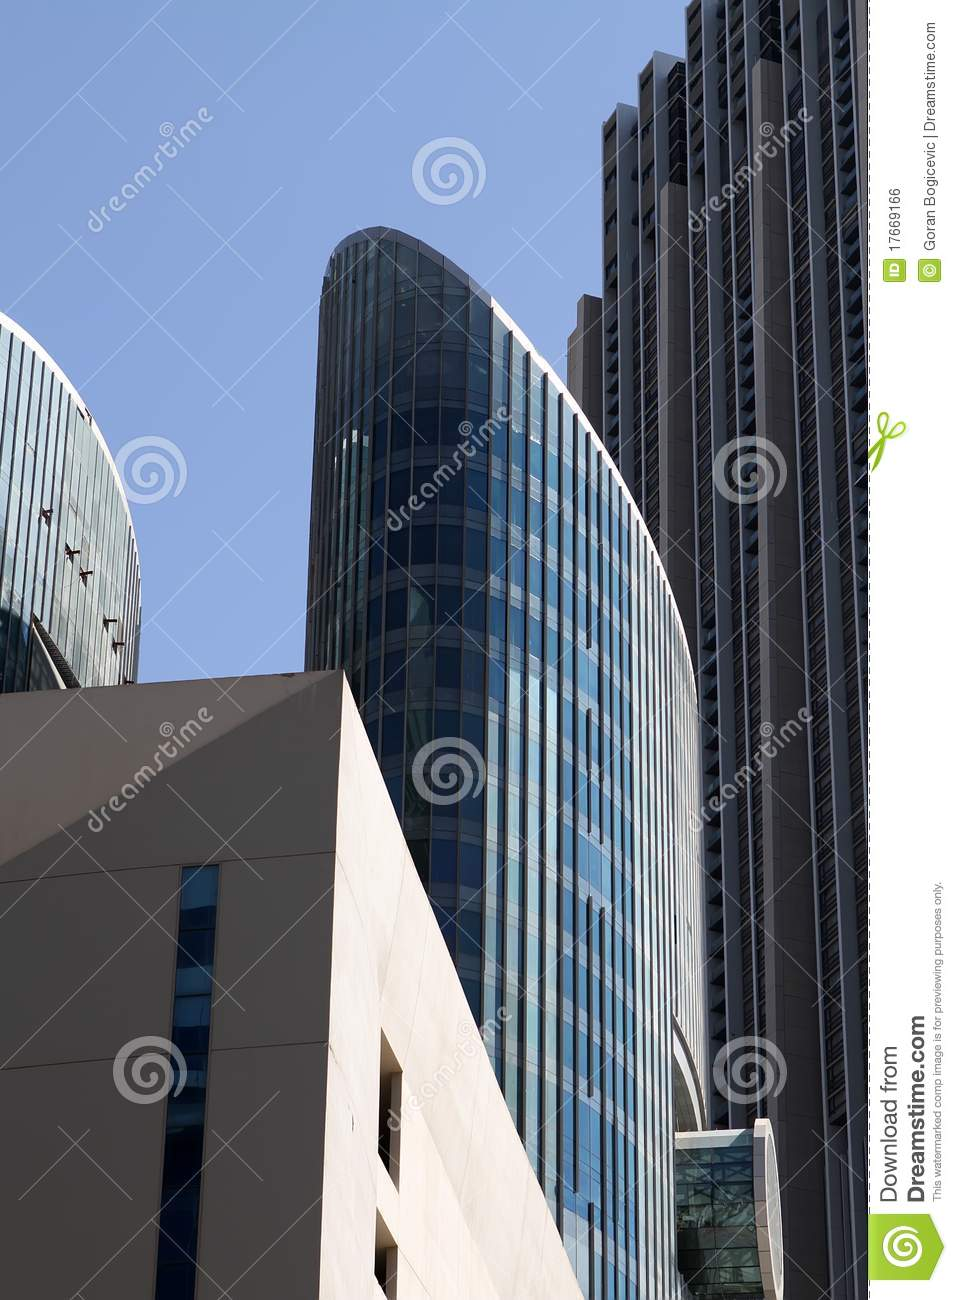 Modern architecture royalty free stock image image 17669166 for Dubai architecture moderne